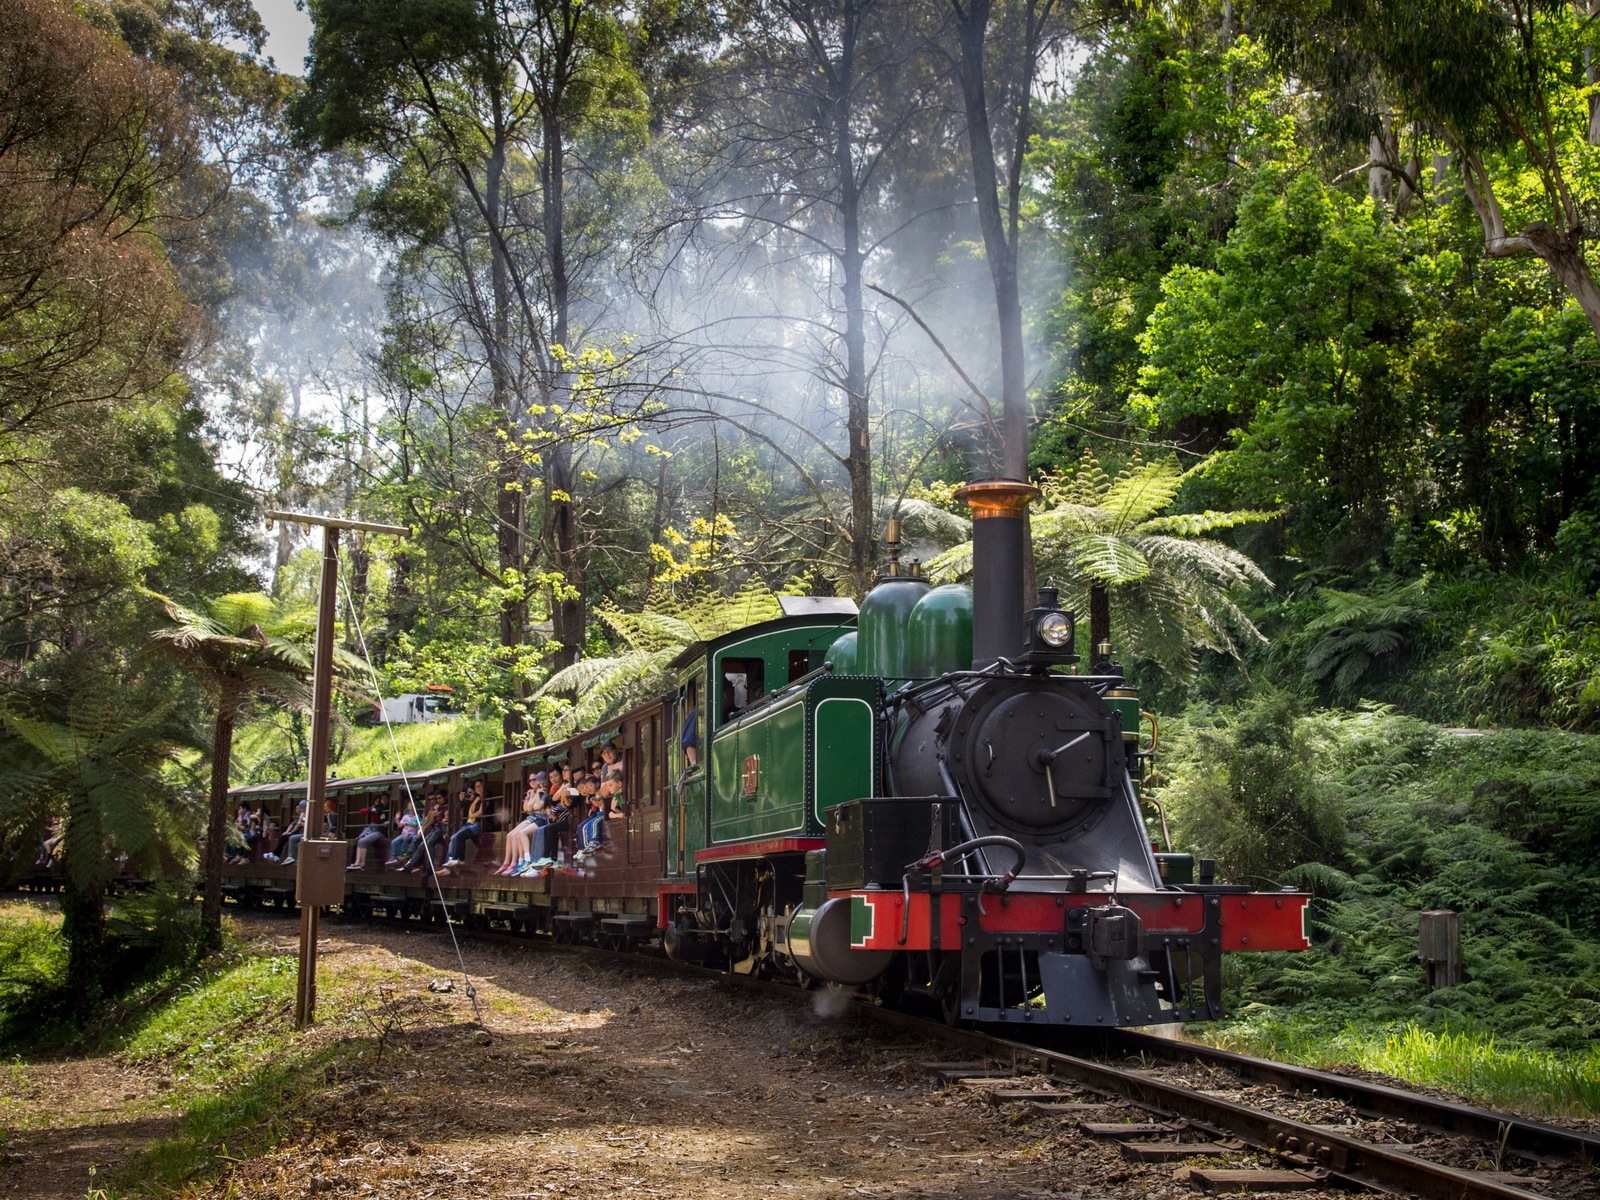 Puffing Billy travels through the Dandenong Ranges